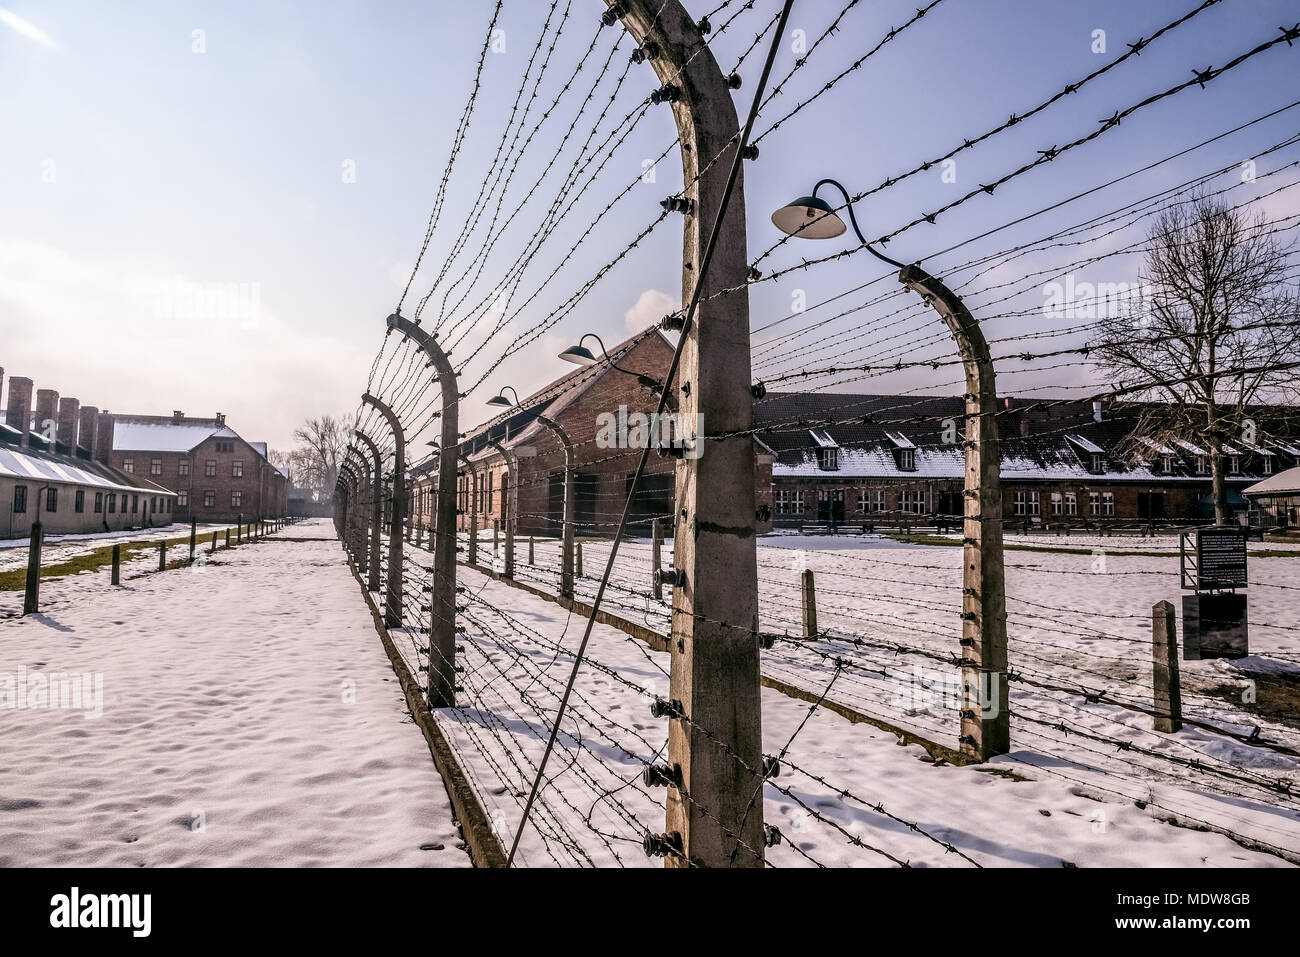 Auschwitz / Oswiecim / Poland - 02.15.2018: Barbed wire fence around a concentration camp. - Stock Image